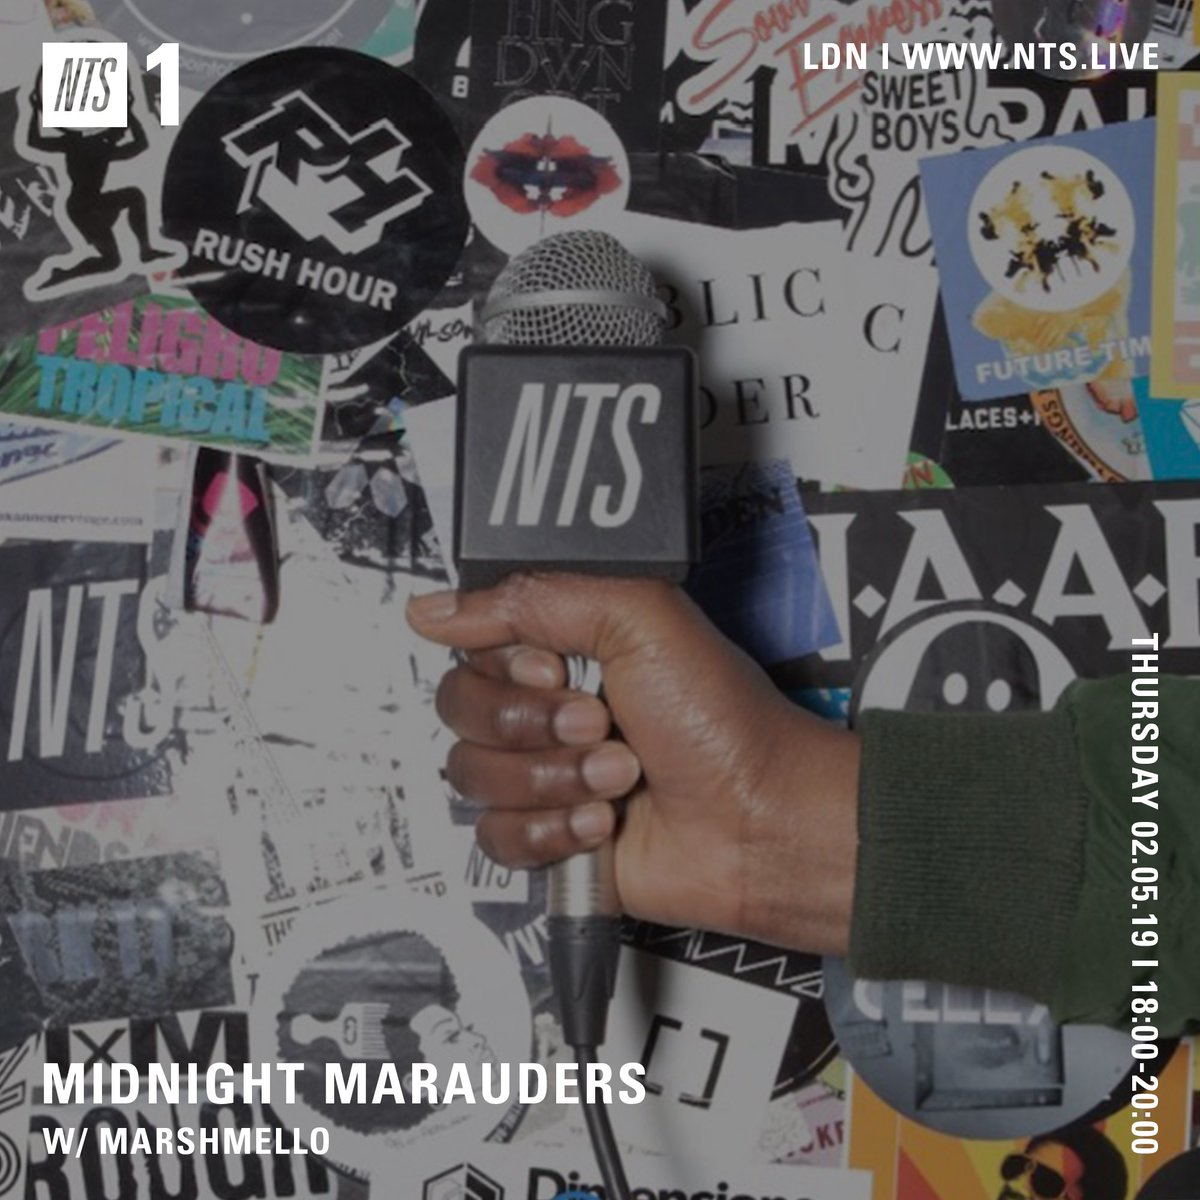 About to go Live @NTSlive 4 Midnight Marauders. You know the drill. Mx pic.twitter.com/MQ2mPCCTK7